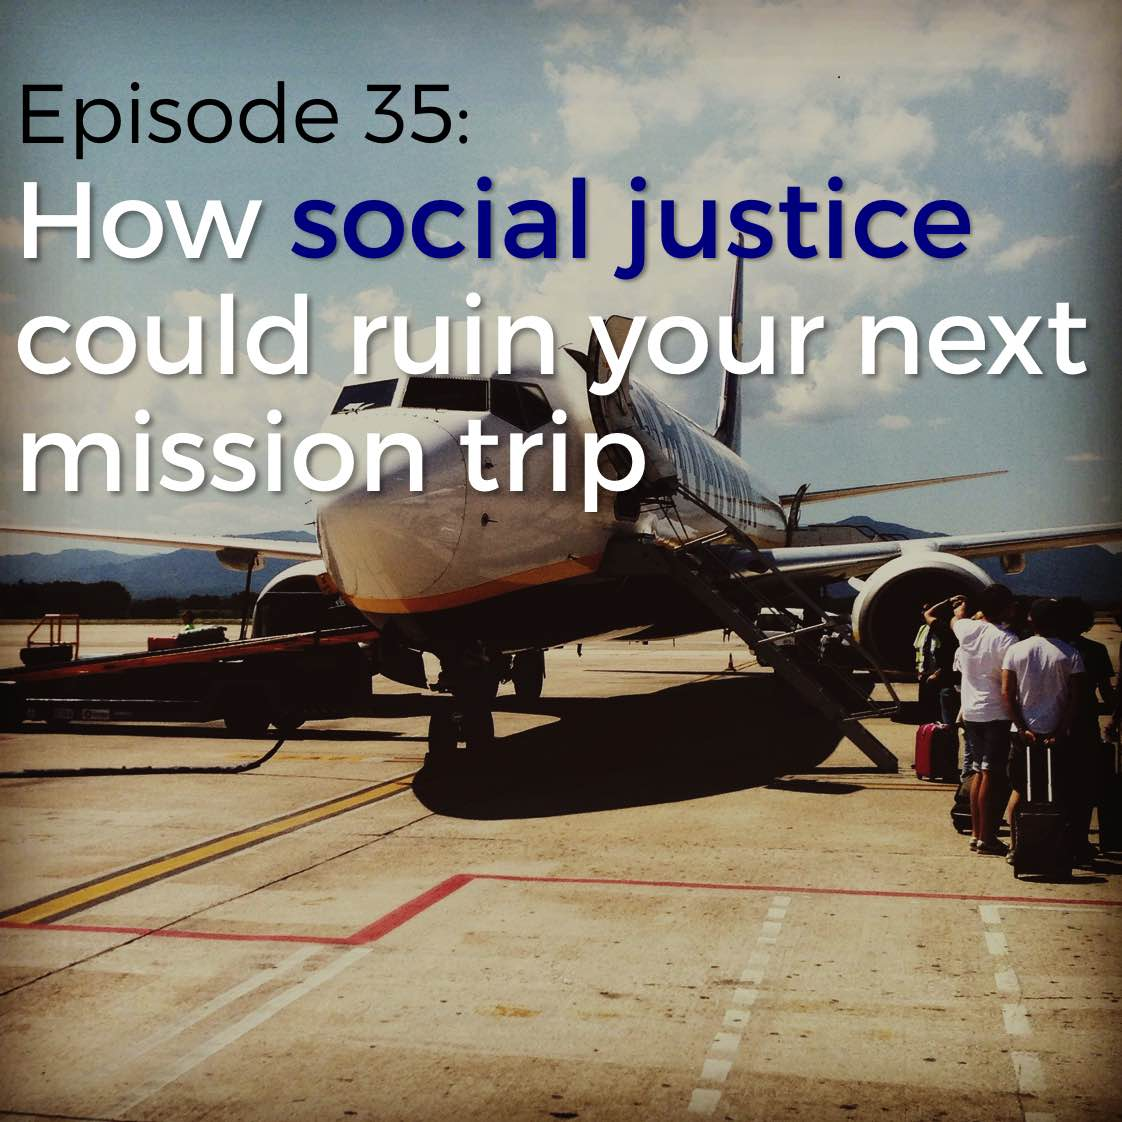 Episode 35: How social justice could ruin your next mission trip